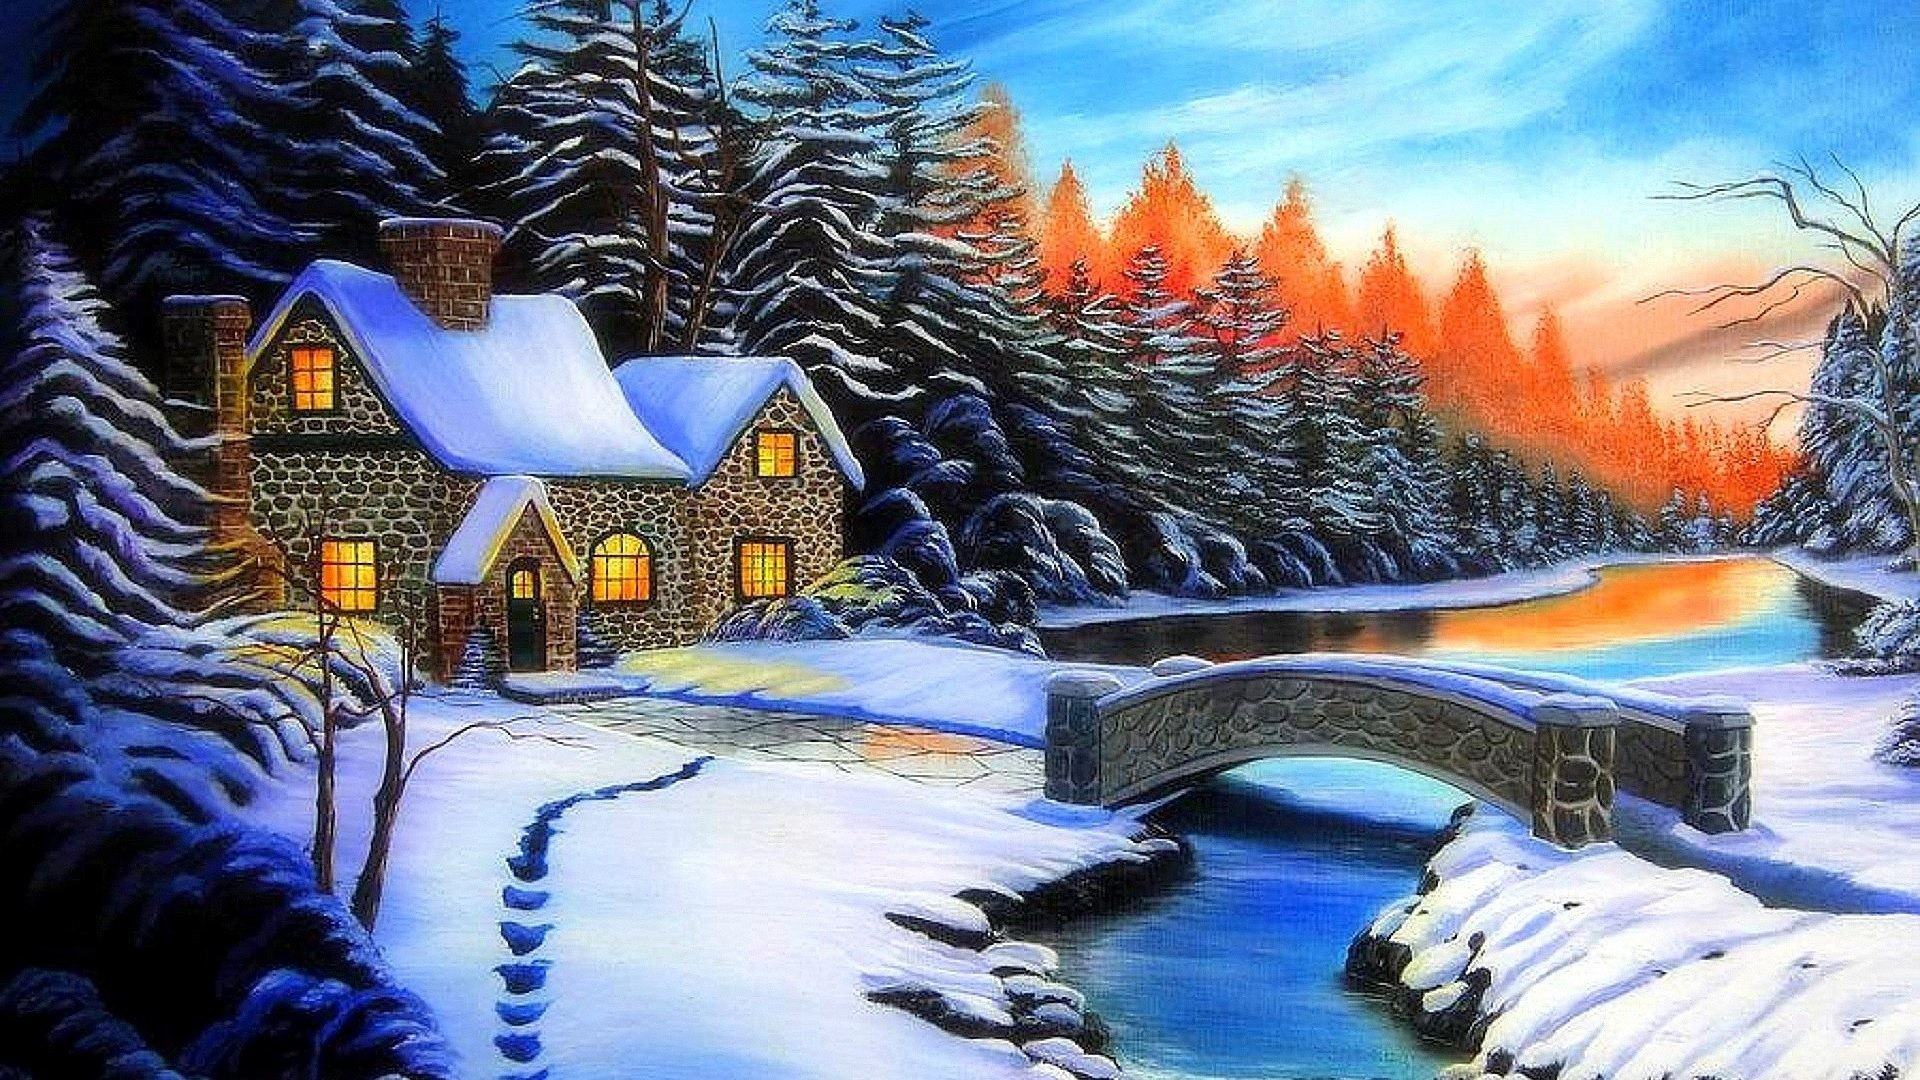 Xmas Tag – Traditional Colors Cool Christmas Drawings Greetings Cozy Love  Architecture Glow Superb Snow Landscapes